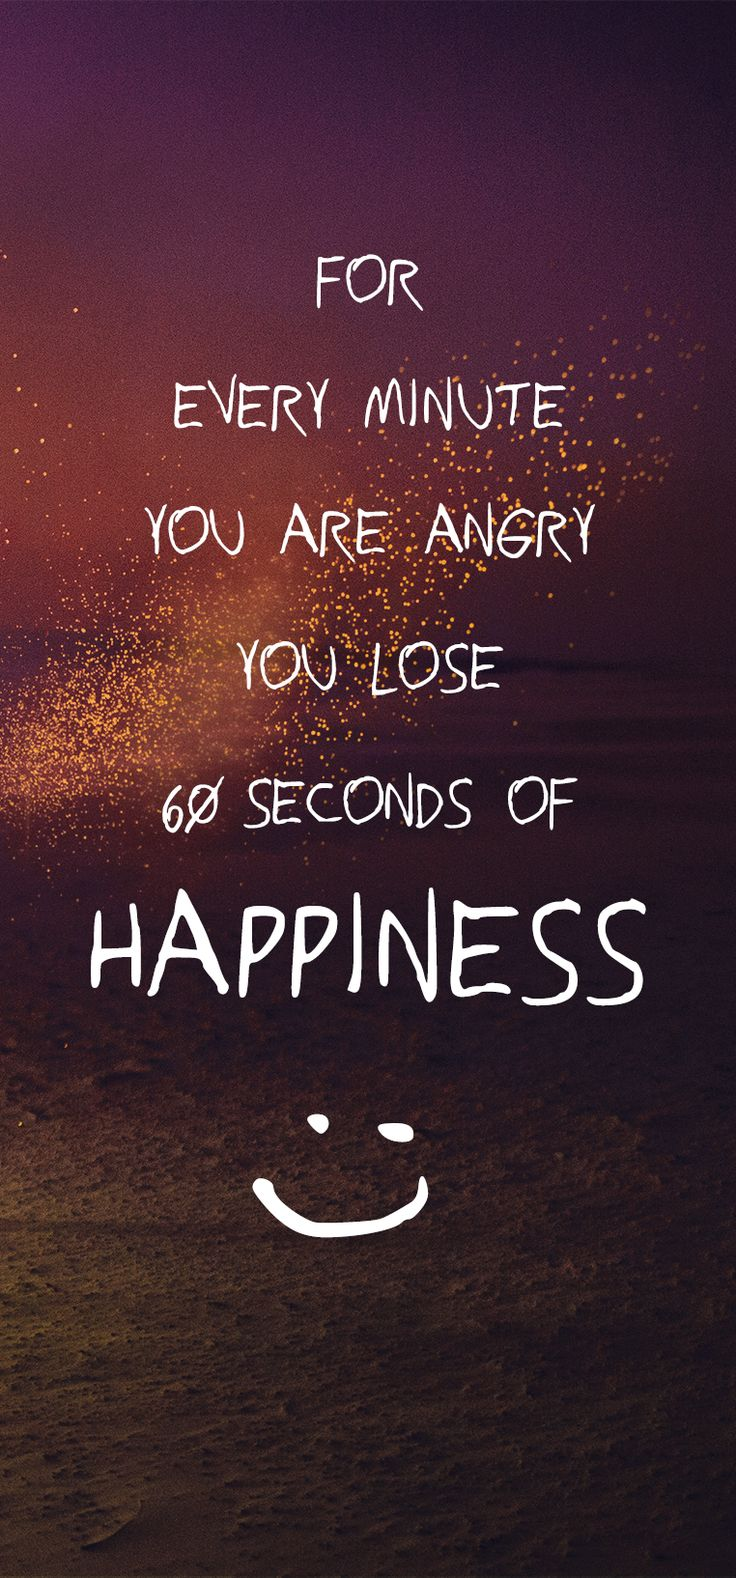 Life Inspiring Quotes Best 25 Control Anger Quotes Ideas On Pinterest  Anger Quotes